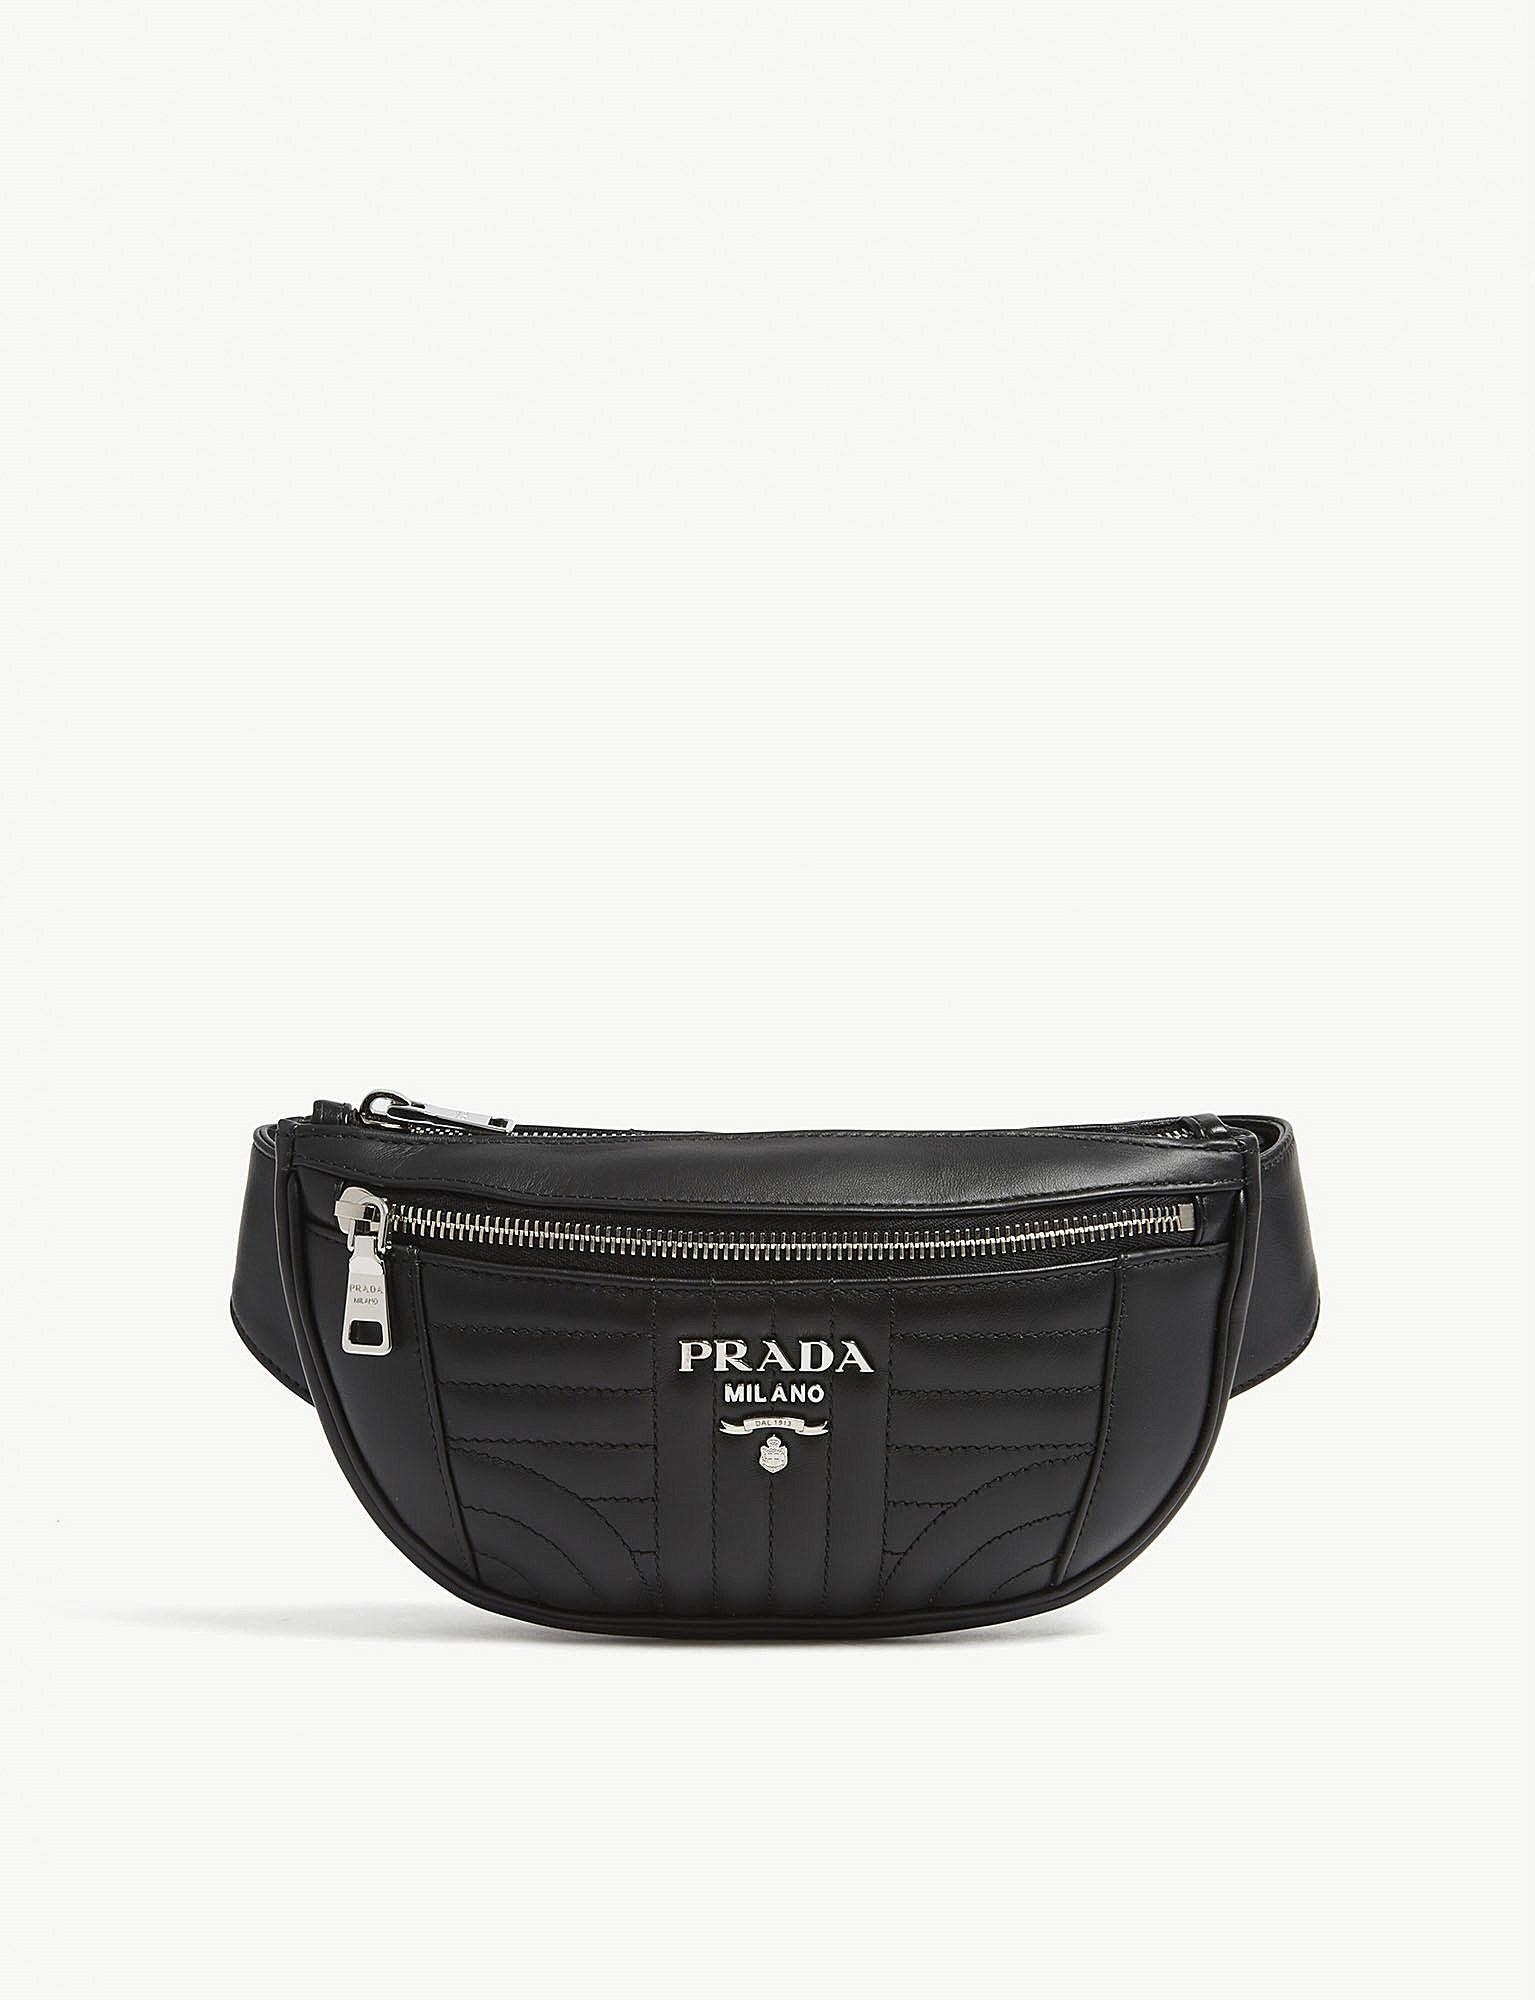 ca3594293117 ... sale prada diagramme quilted leather bum bag in black for men lyst  5ac0c 2fa7f